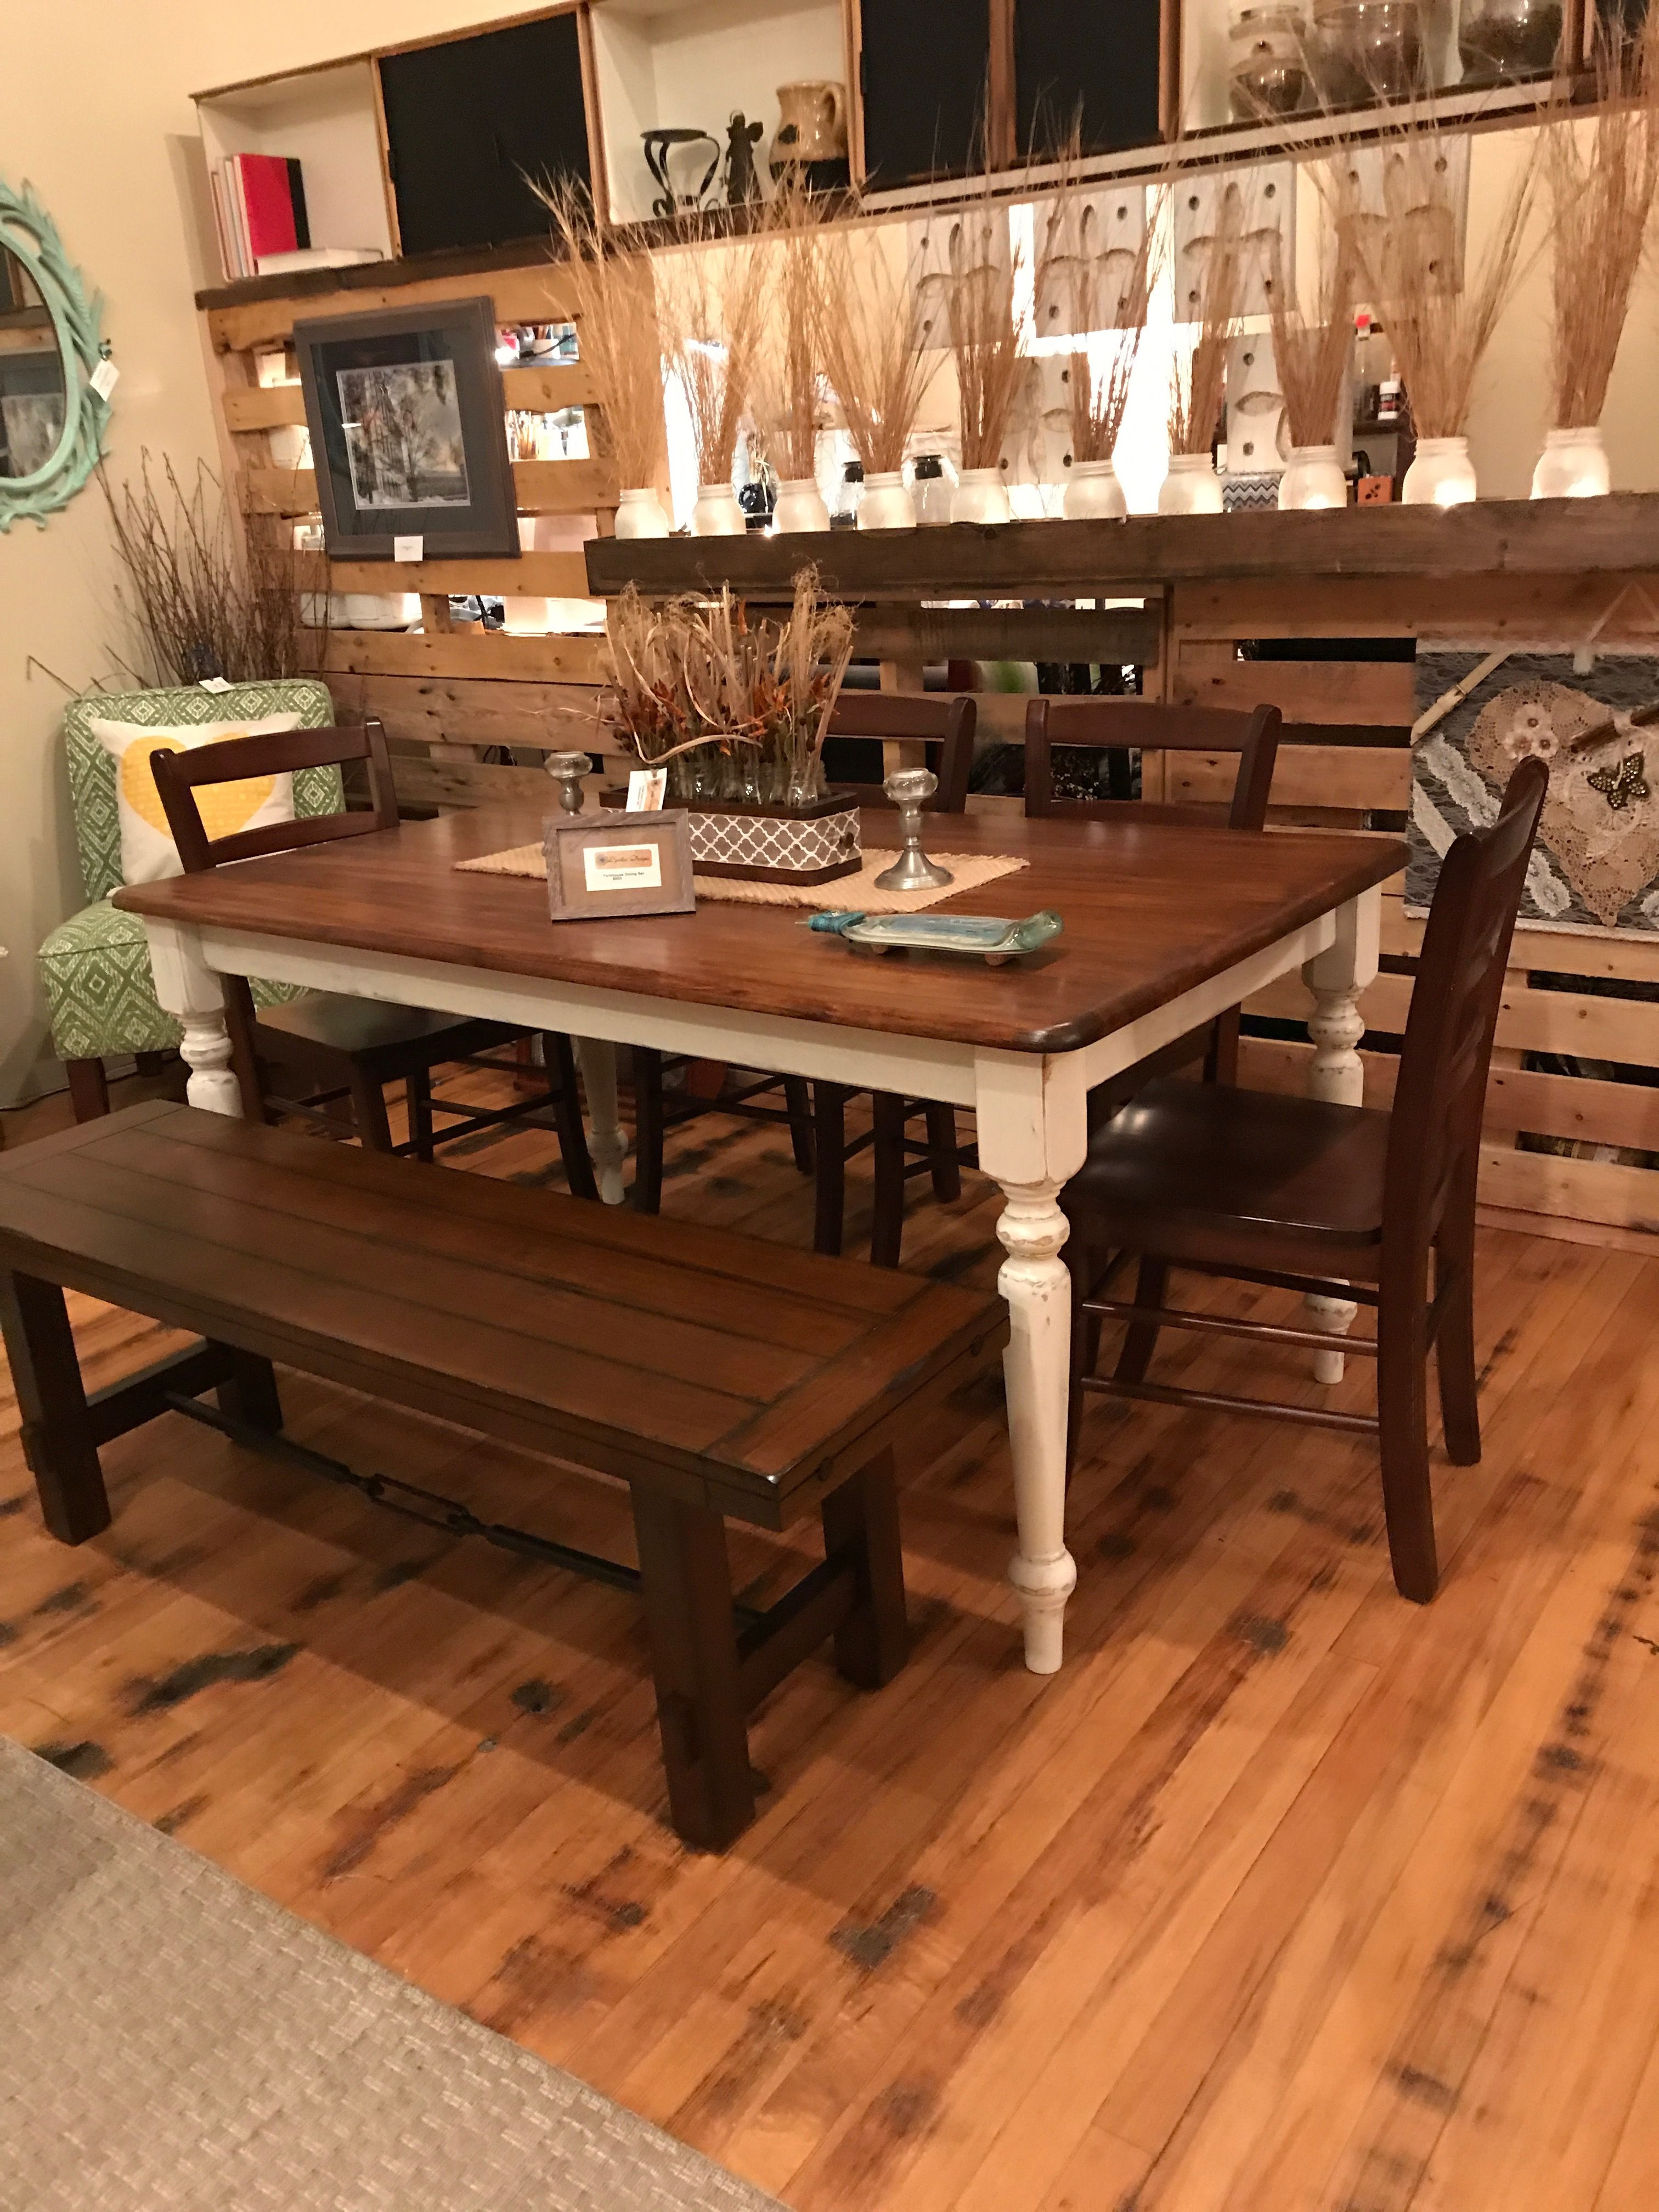 Butcher Block Dining Room Table This